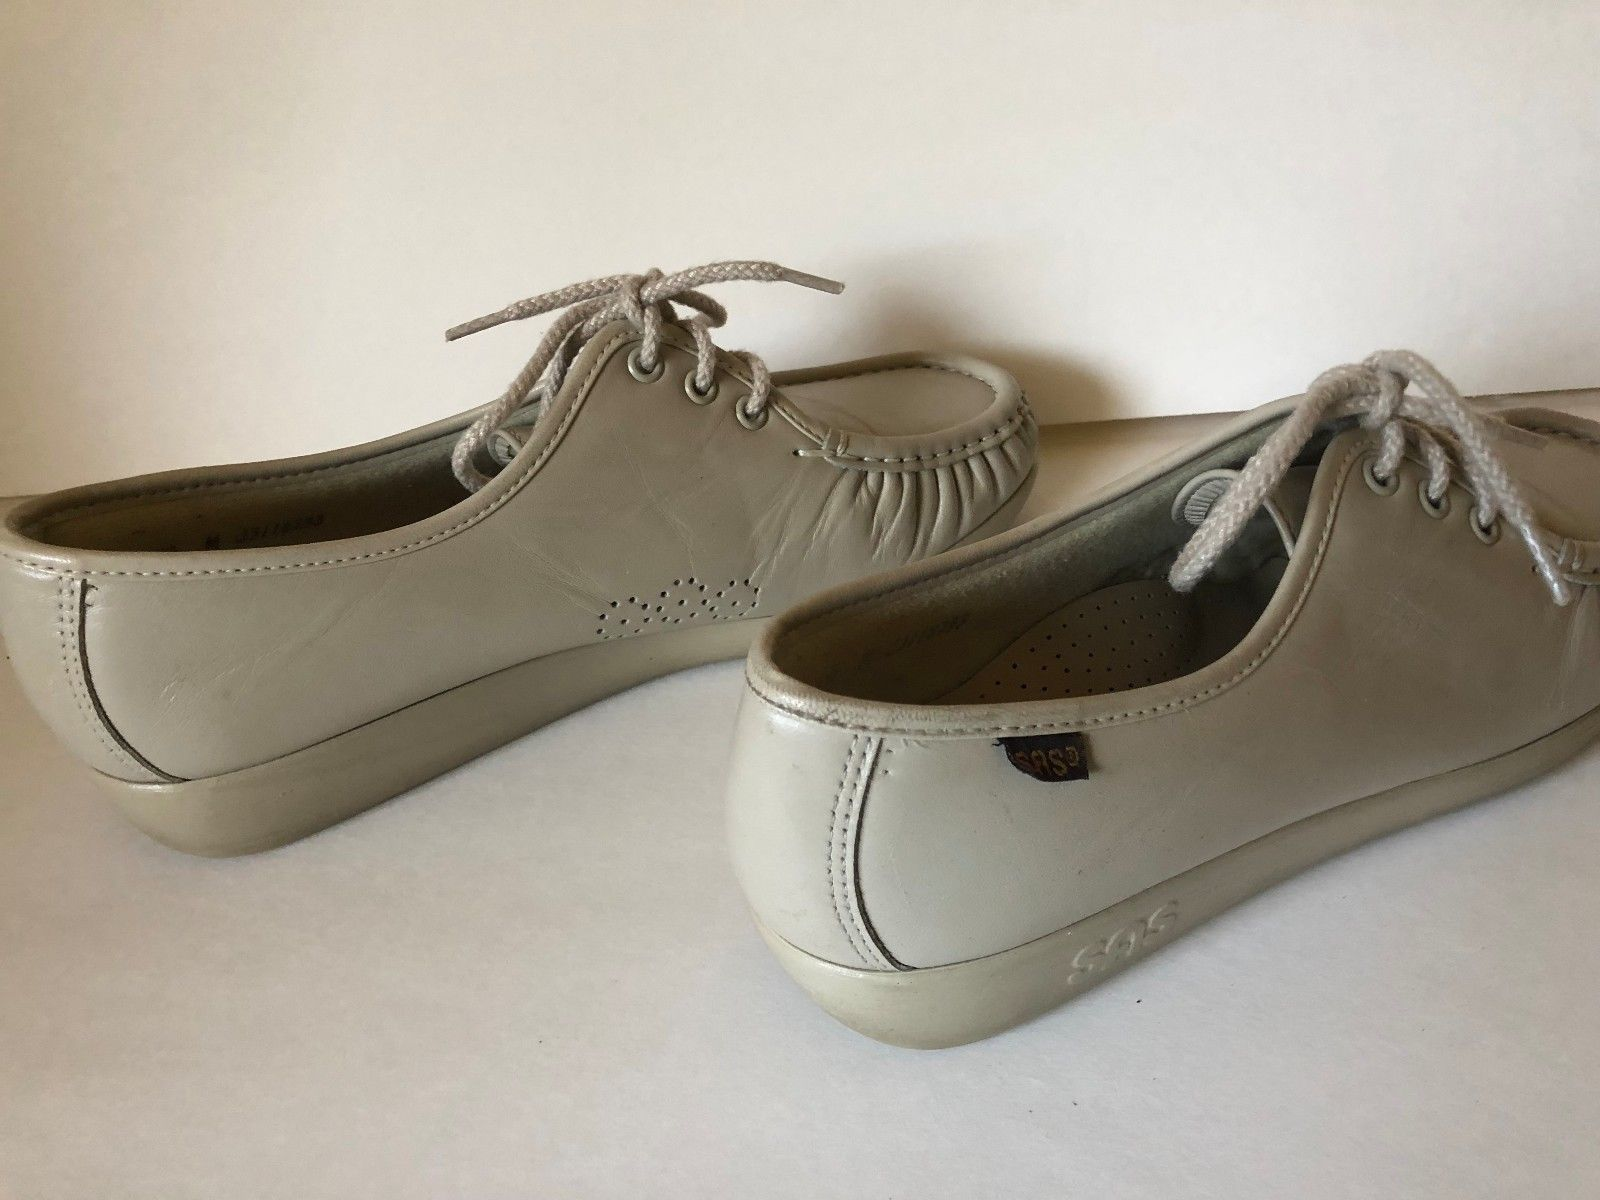 392bad79f12ec3 Genuine SAS Comfort Shoes Handsewn Leather Oxford Lace Up Loafers Size 10 M